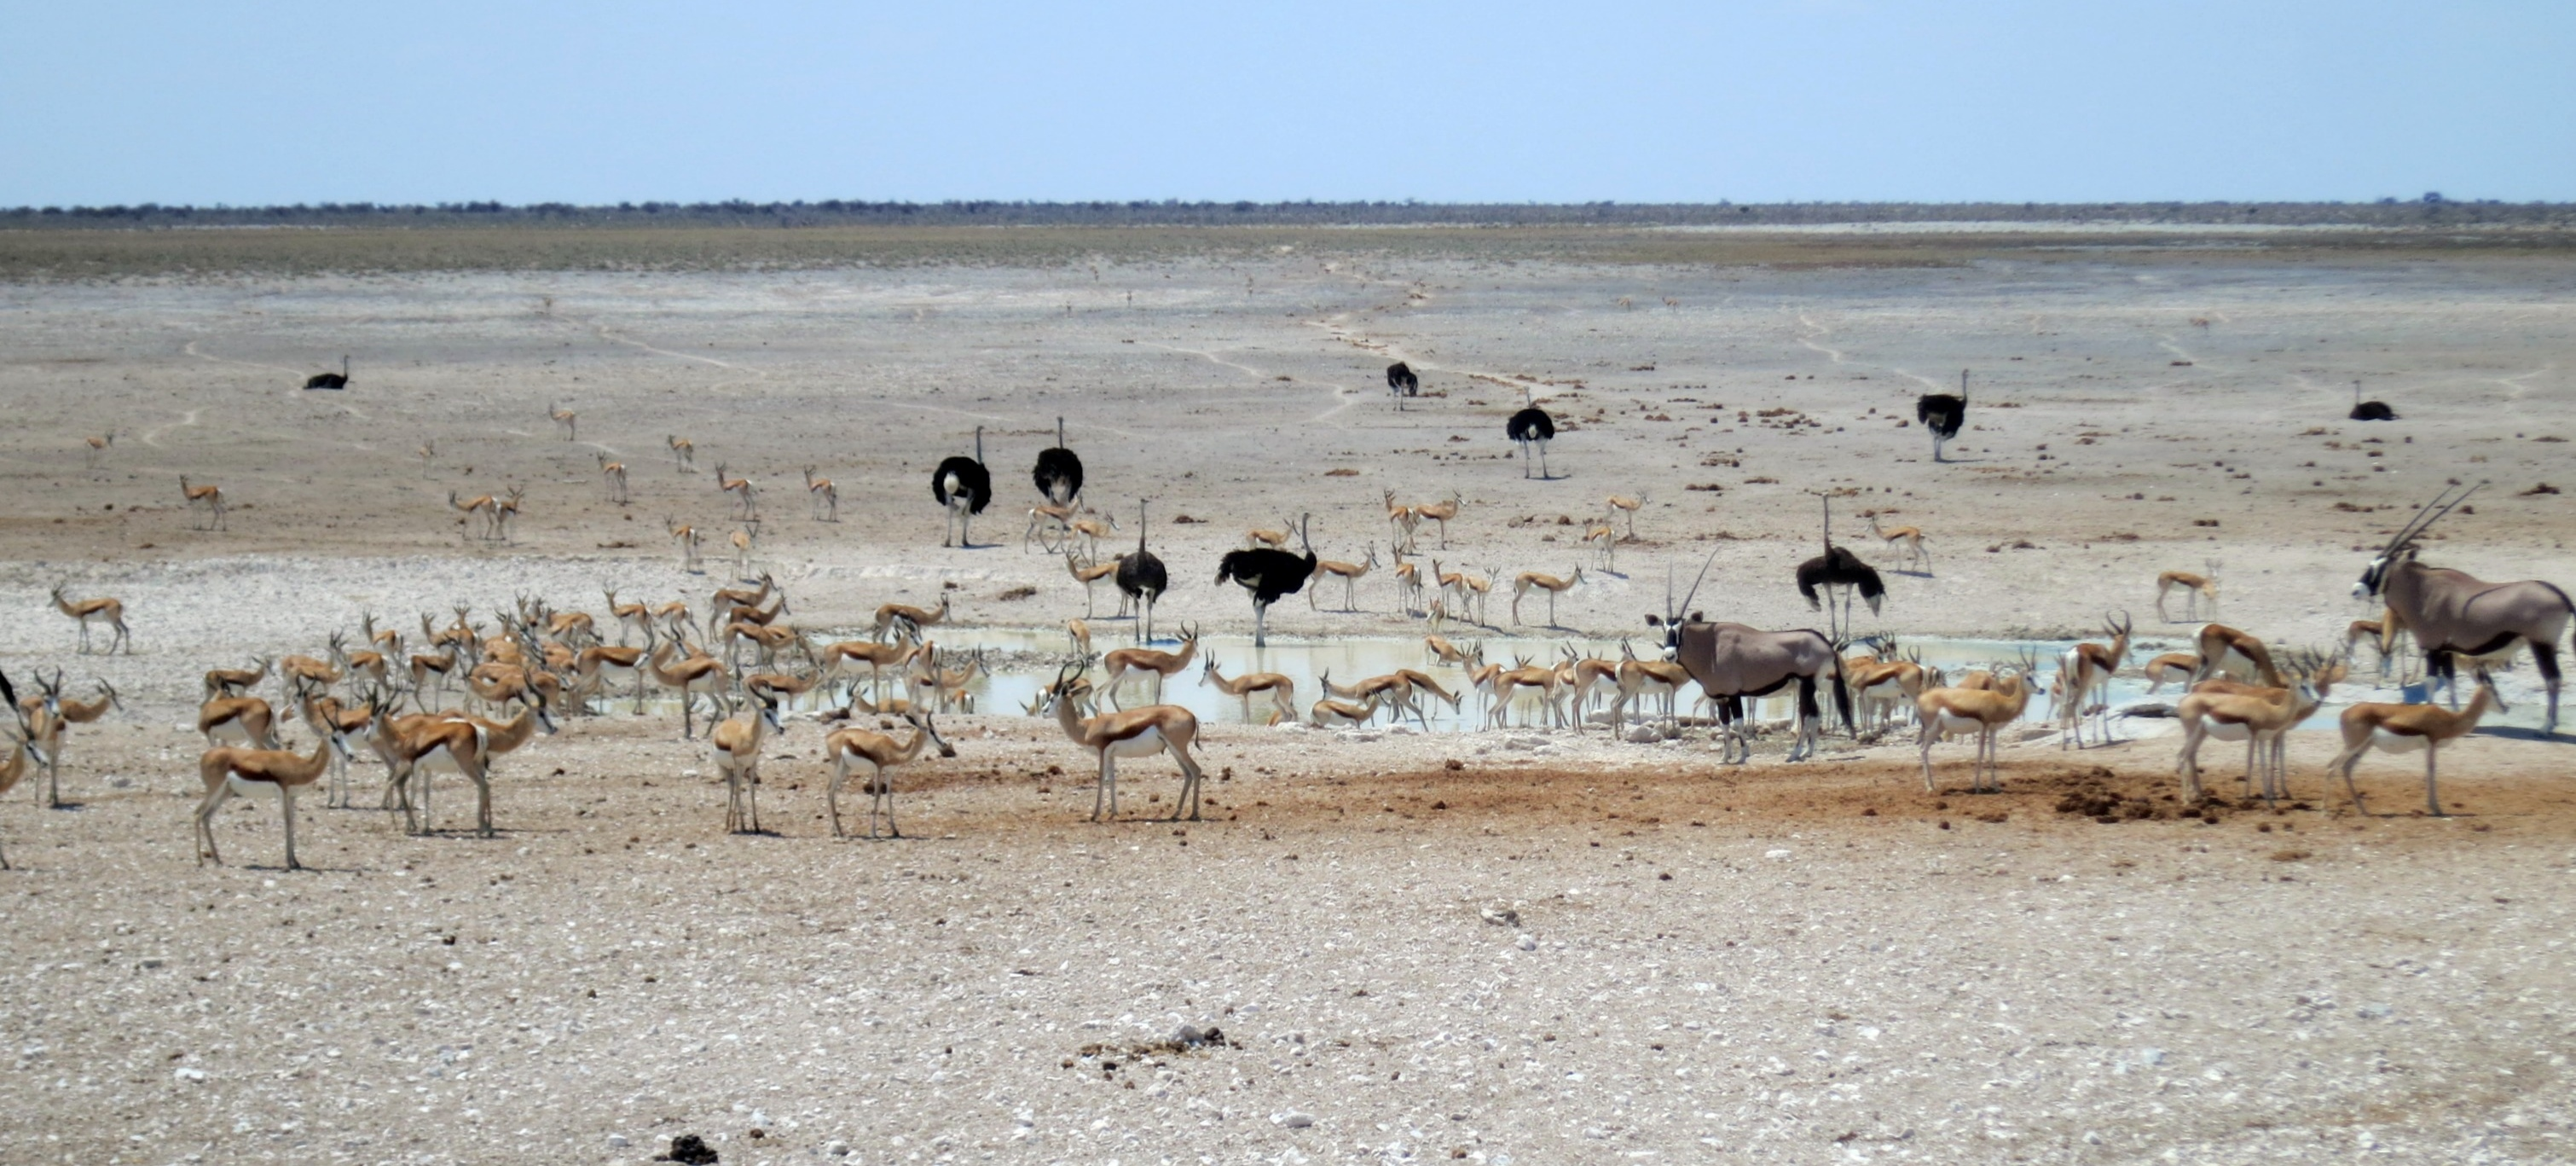 Experience Chills & Thrills at Etosha!